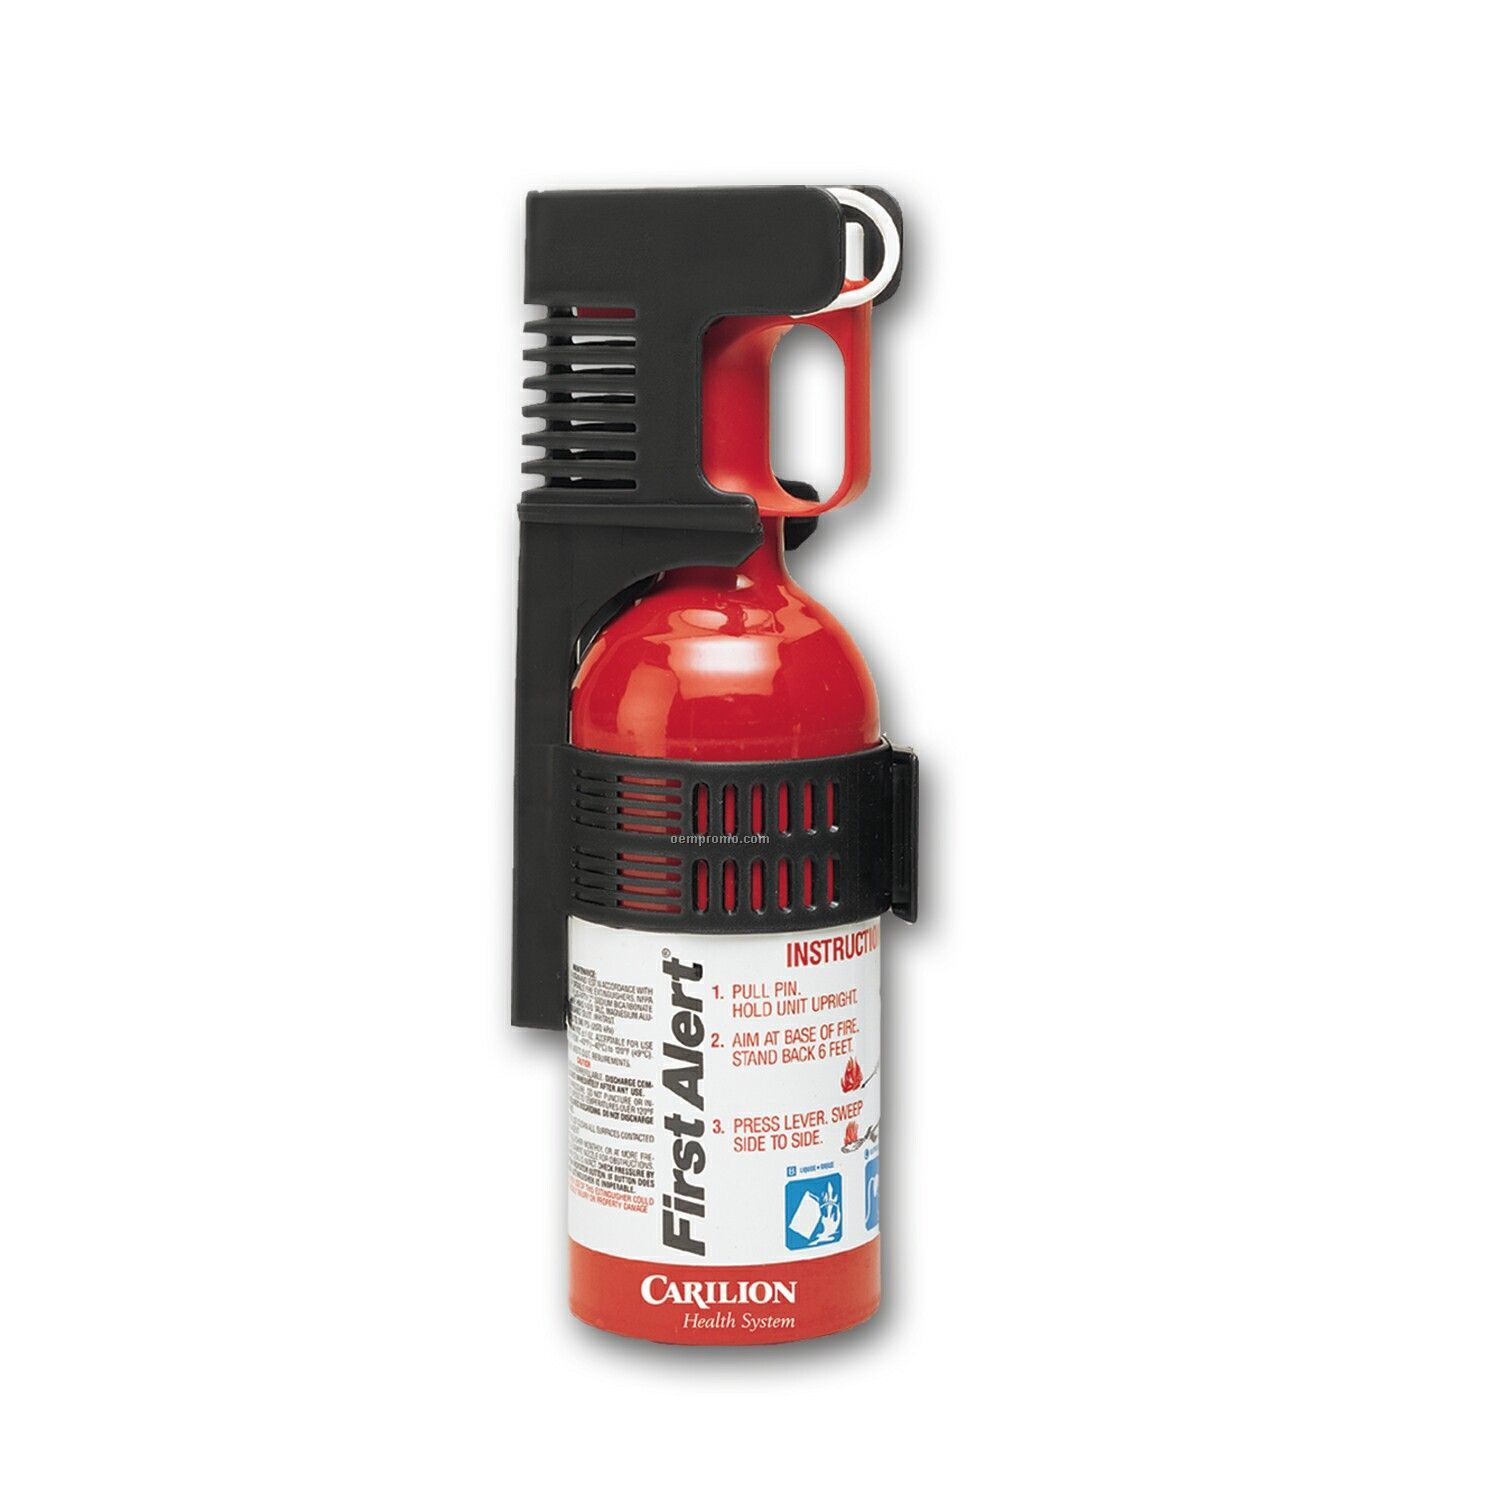 kidde kitchen fire extinguisher small design electric cook top archives suppression systems work